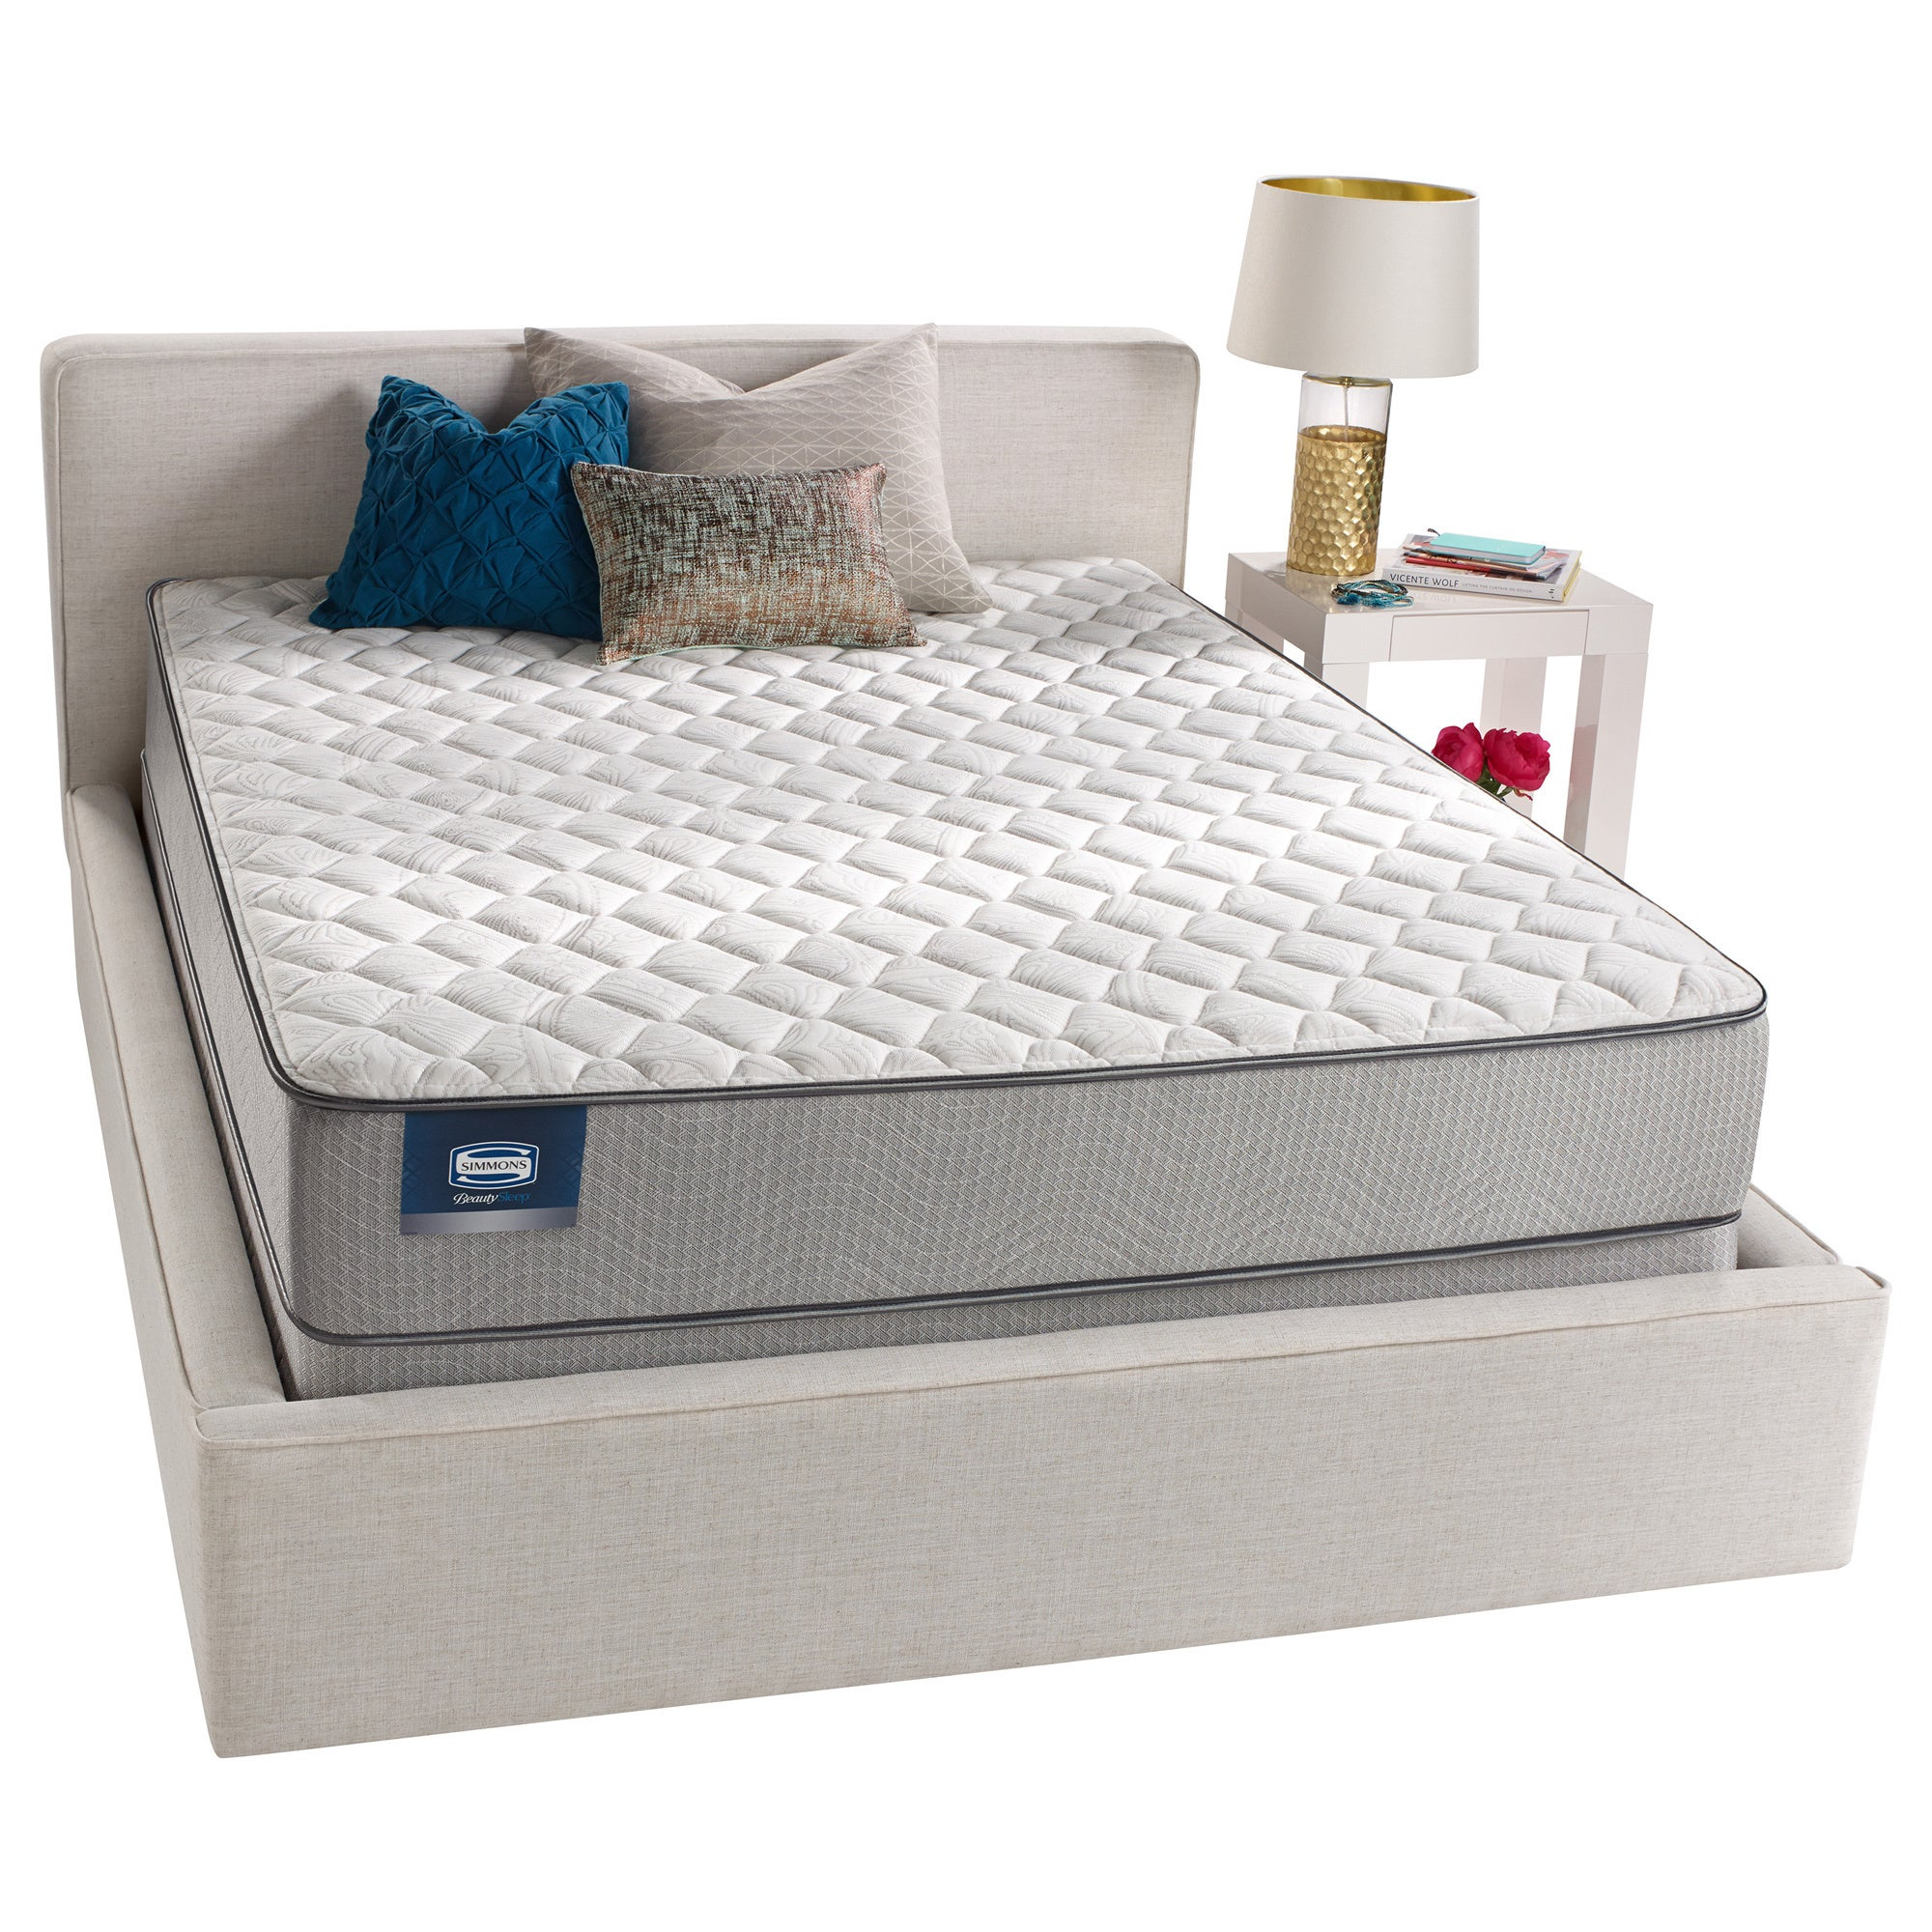 near queen frame in suites cool sets feet size outstanding bedroom headboard furniture clearance full raymour home small mattress and boxspring stores comforter with under king set interior walmart rooms me cheap for